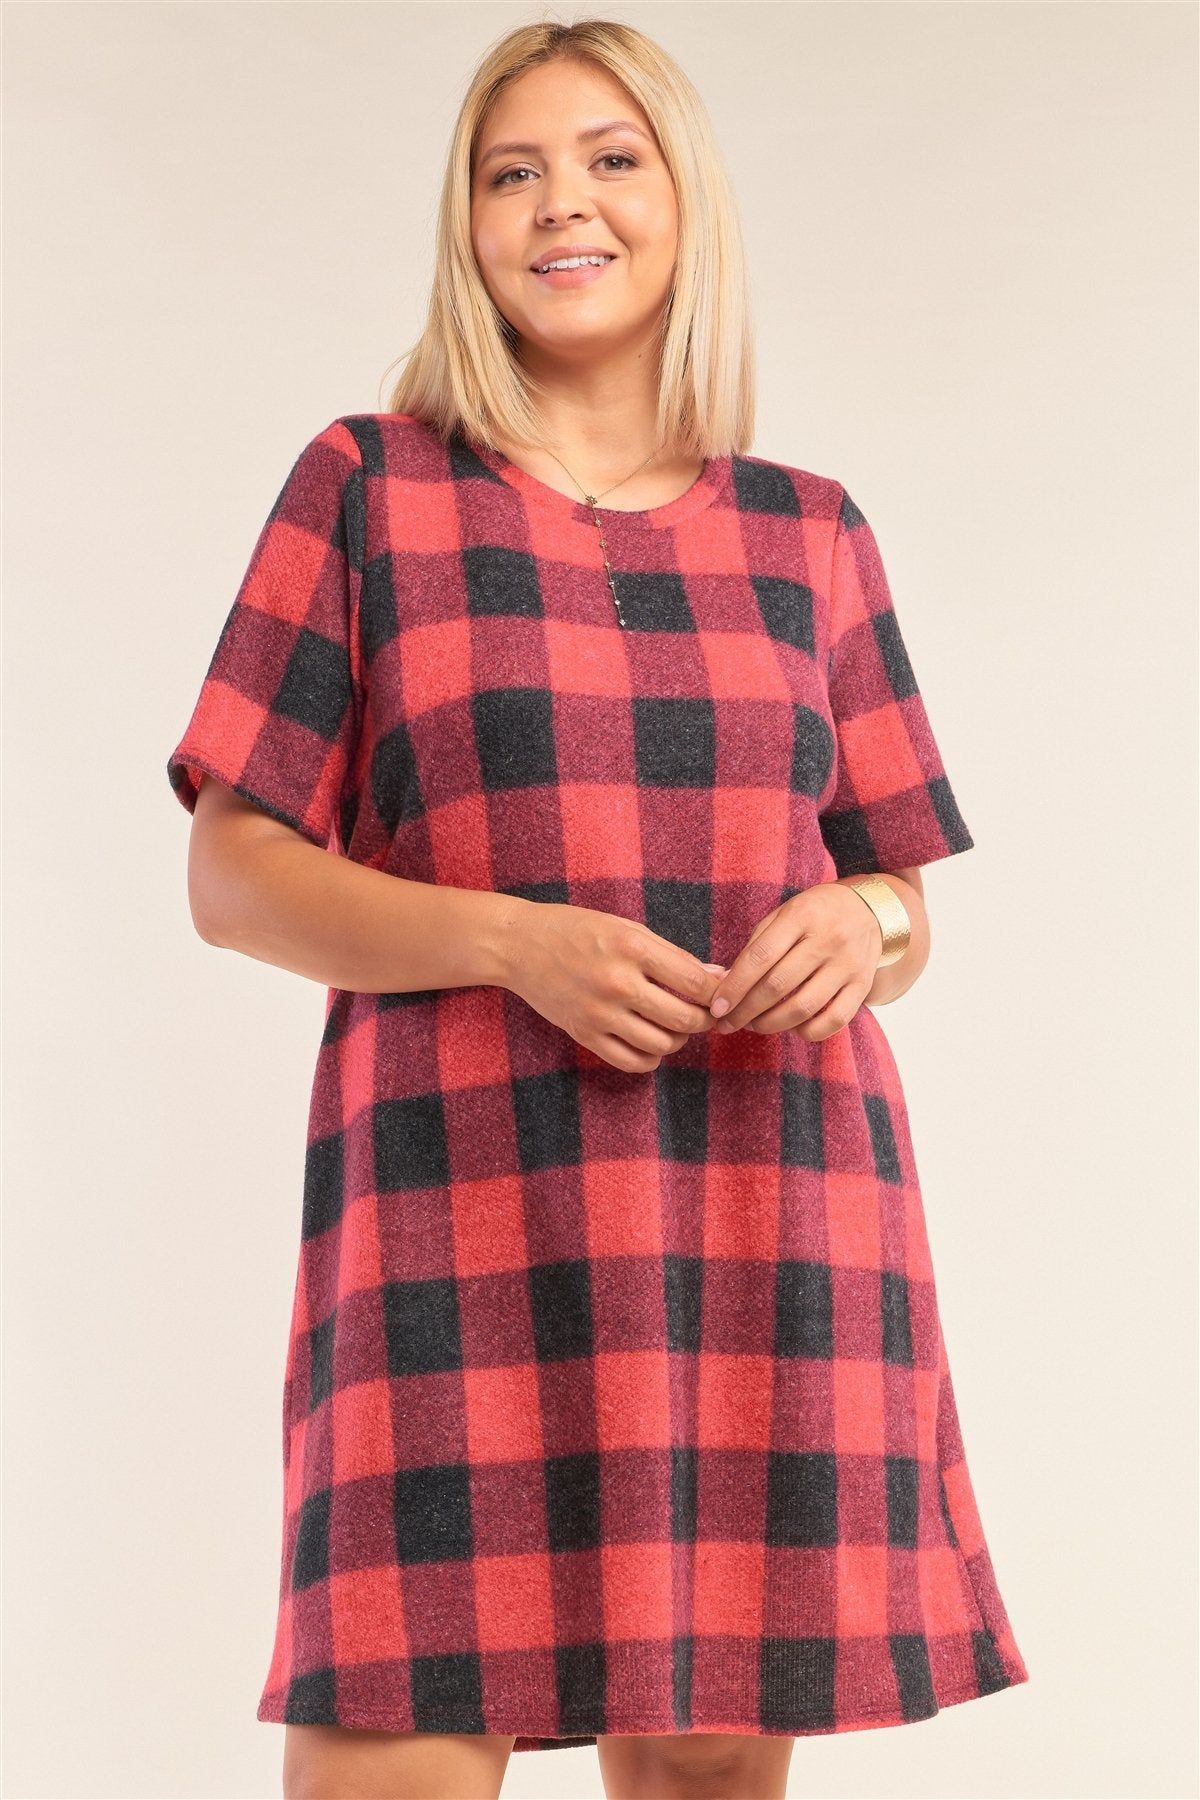 Plus Size Checkered Round Neck Short Sleeve Sweater Mini Dress - CYFASHION